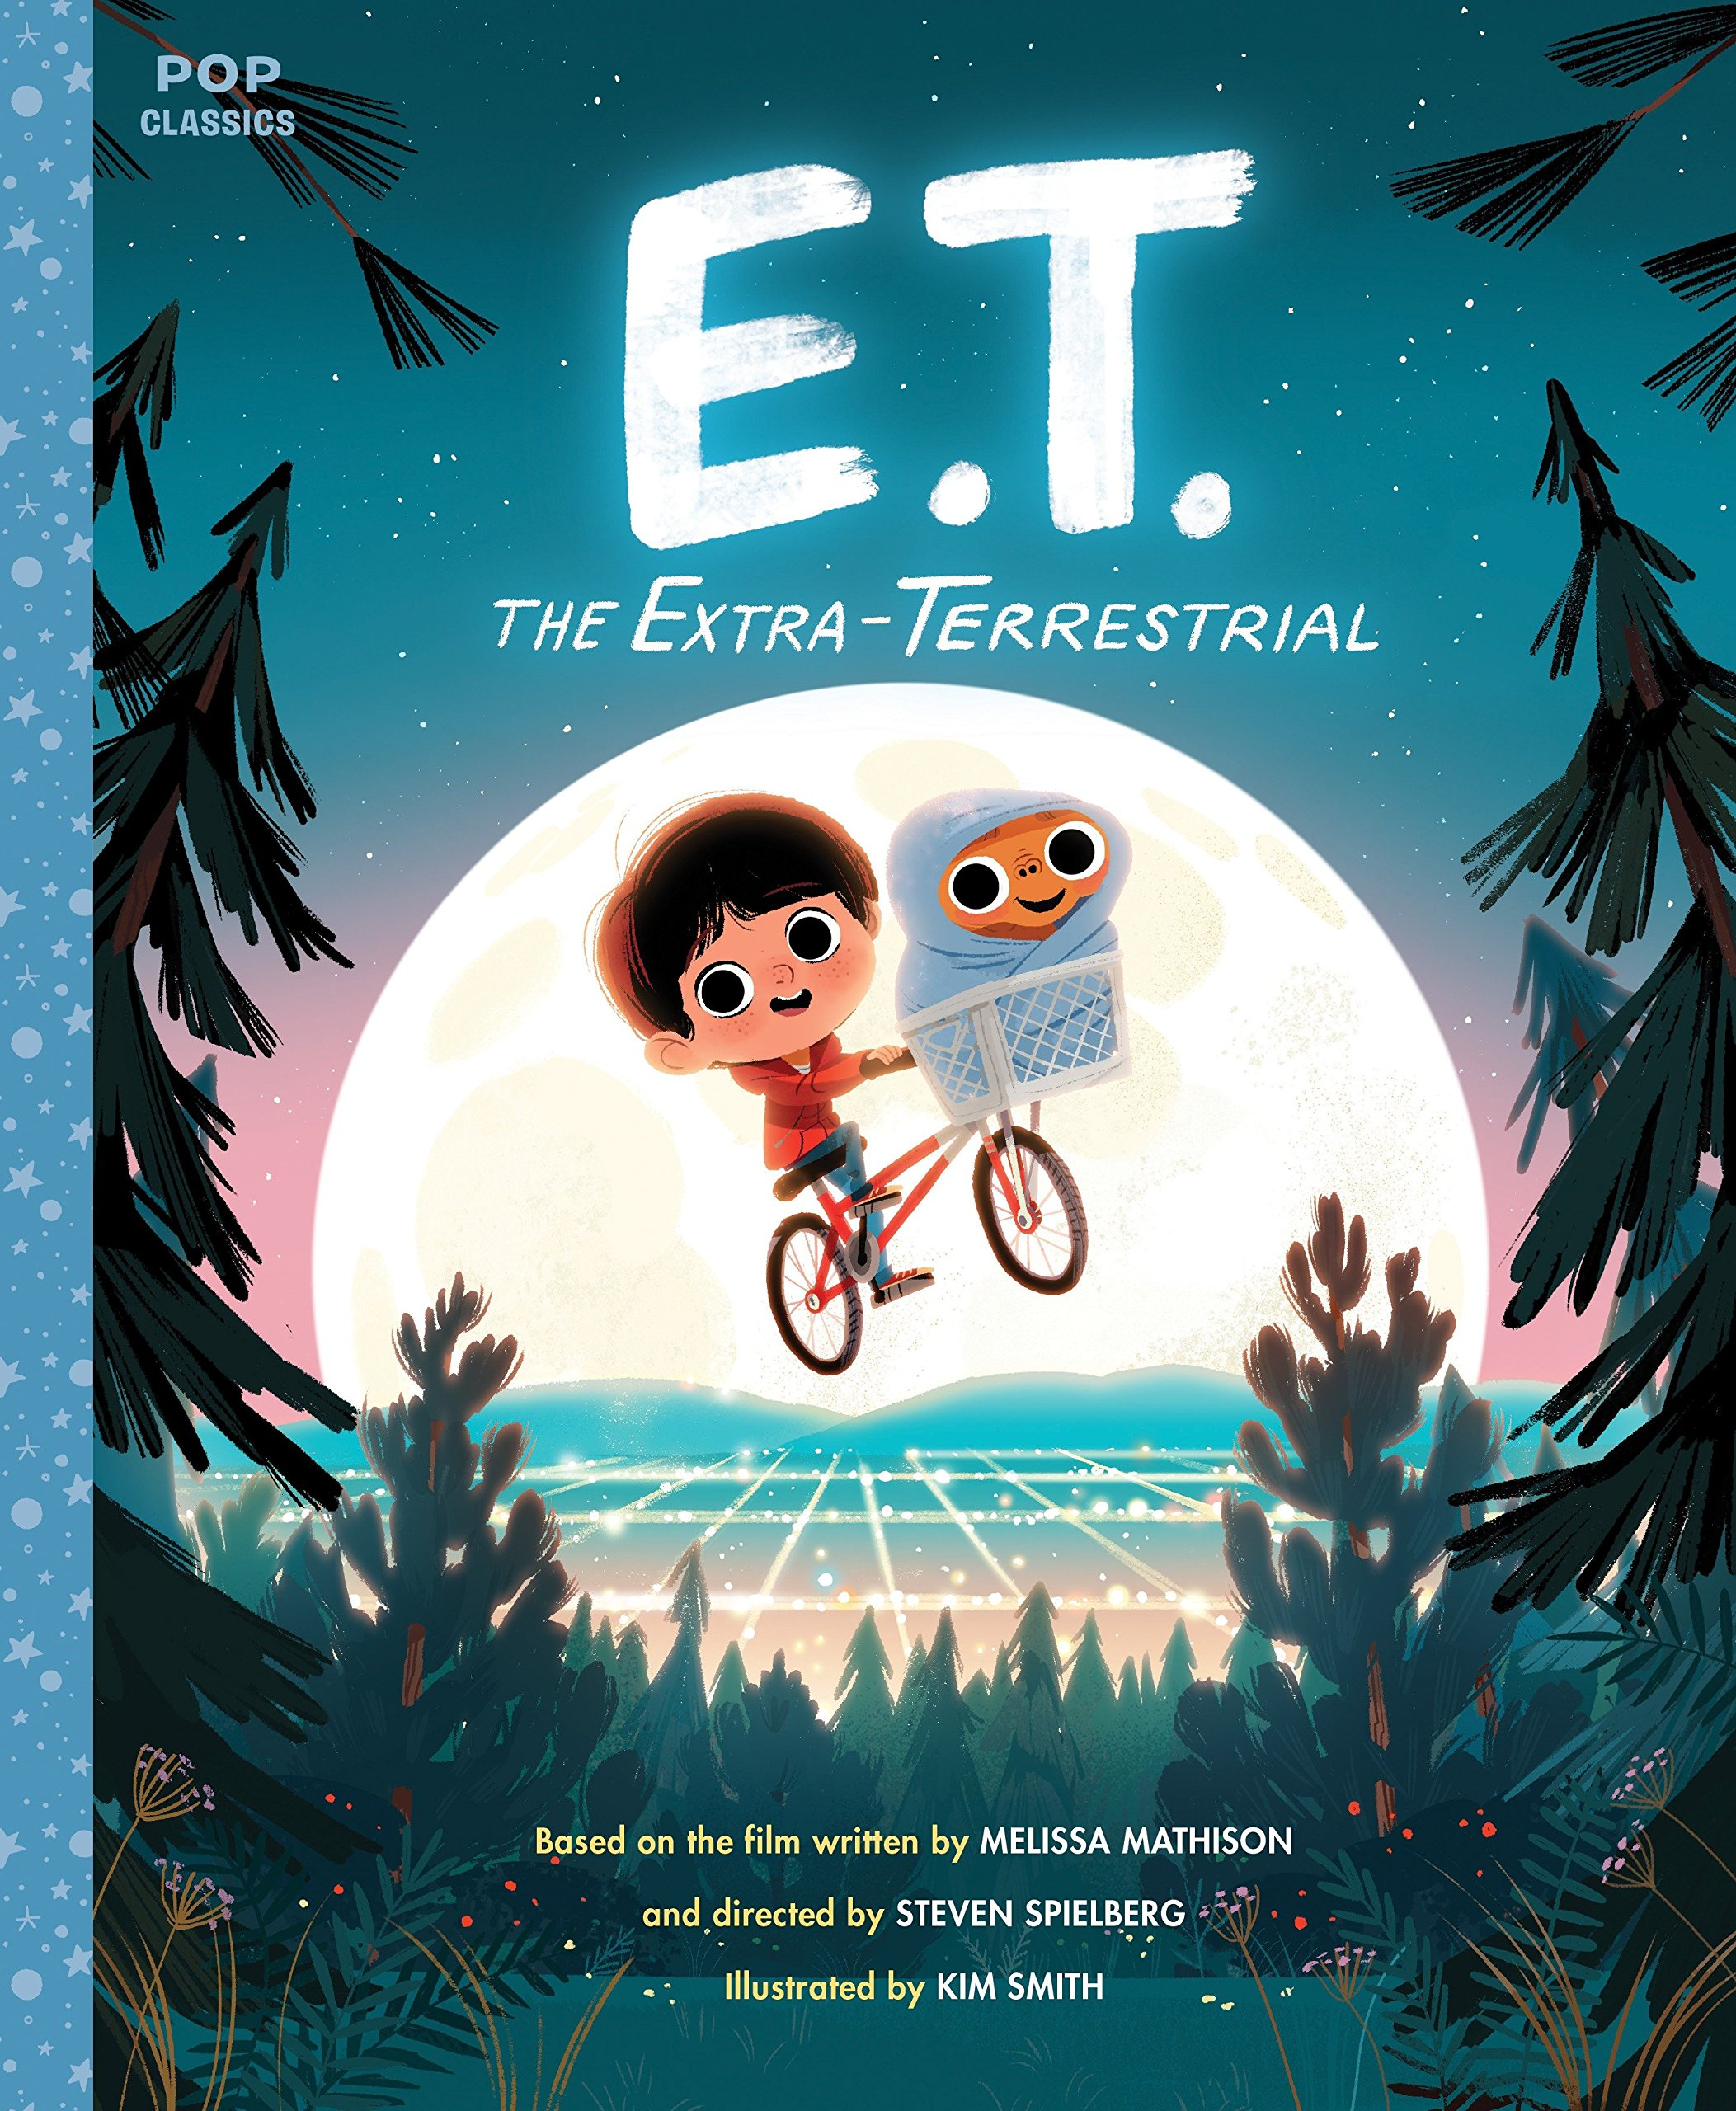 E.T The Extra-Terrestrial, Kim Smith - A book filled with courage, friendship, and the power of imagination! Follow Elliot's journey as he discovers life with an extra-terrestrial. This book is based on the original film (written by Melissa Matheson and directed by Steven Spielberg) which was released in 1982. It's amazing that in 2019 students all over the world still love this story!